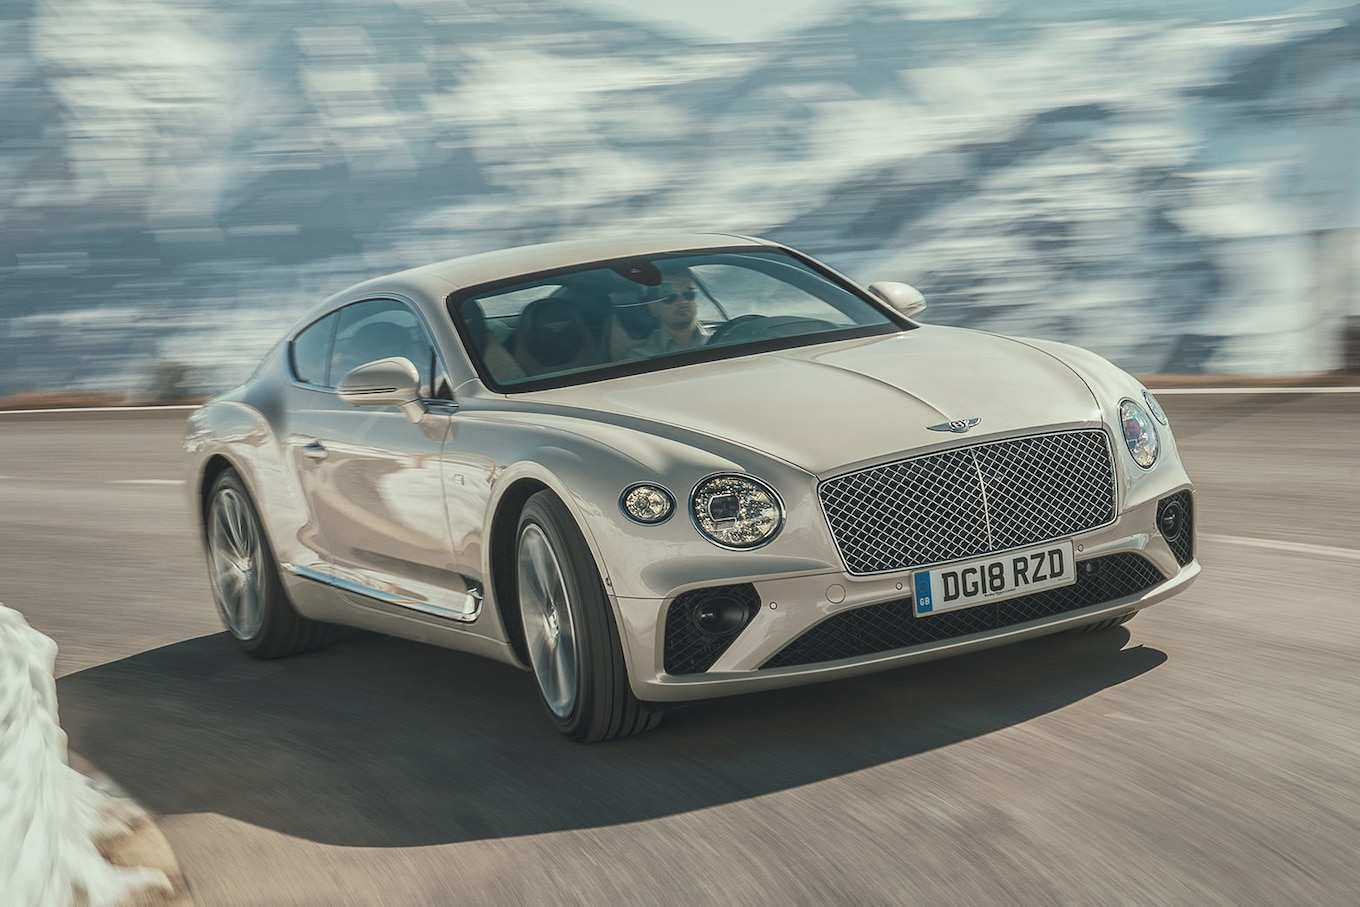 17 All New 2019 Bentley Continental Gtc History for 2019 Bentley Continental Gtc